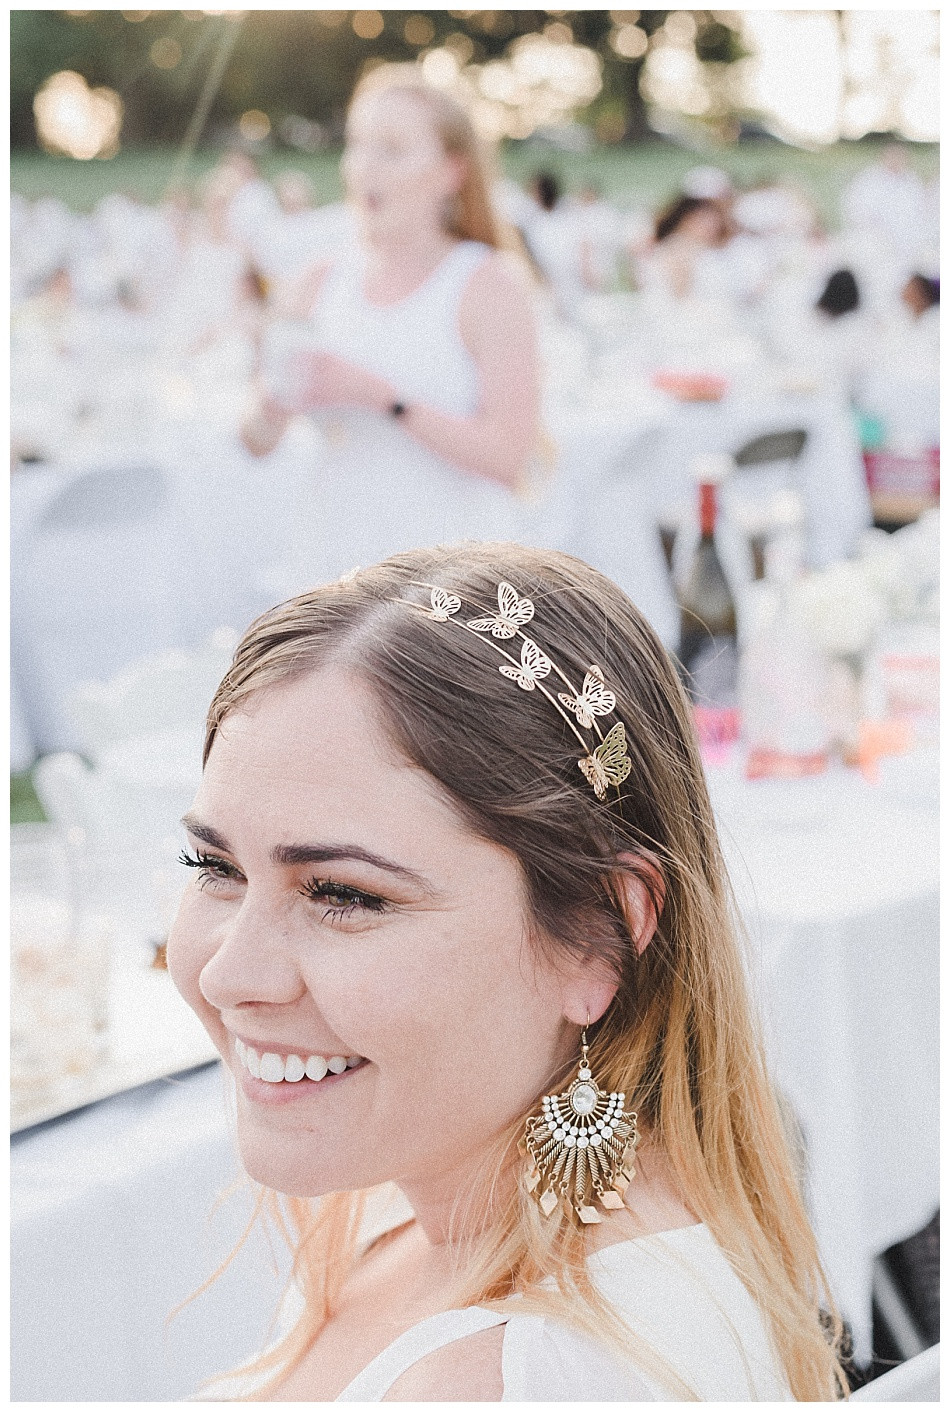 Golden Butterfly Headband, white, Fete en Blanc (Party in White) Lancaster 2019 at Longs Park by Angela Weiler Photography - Fine Art Wedding Photographer.